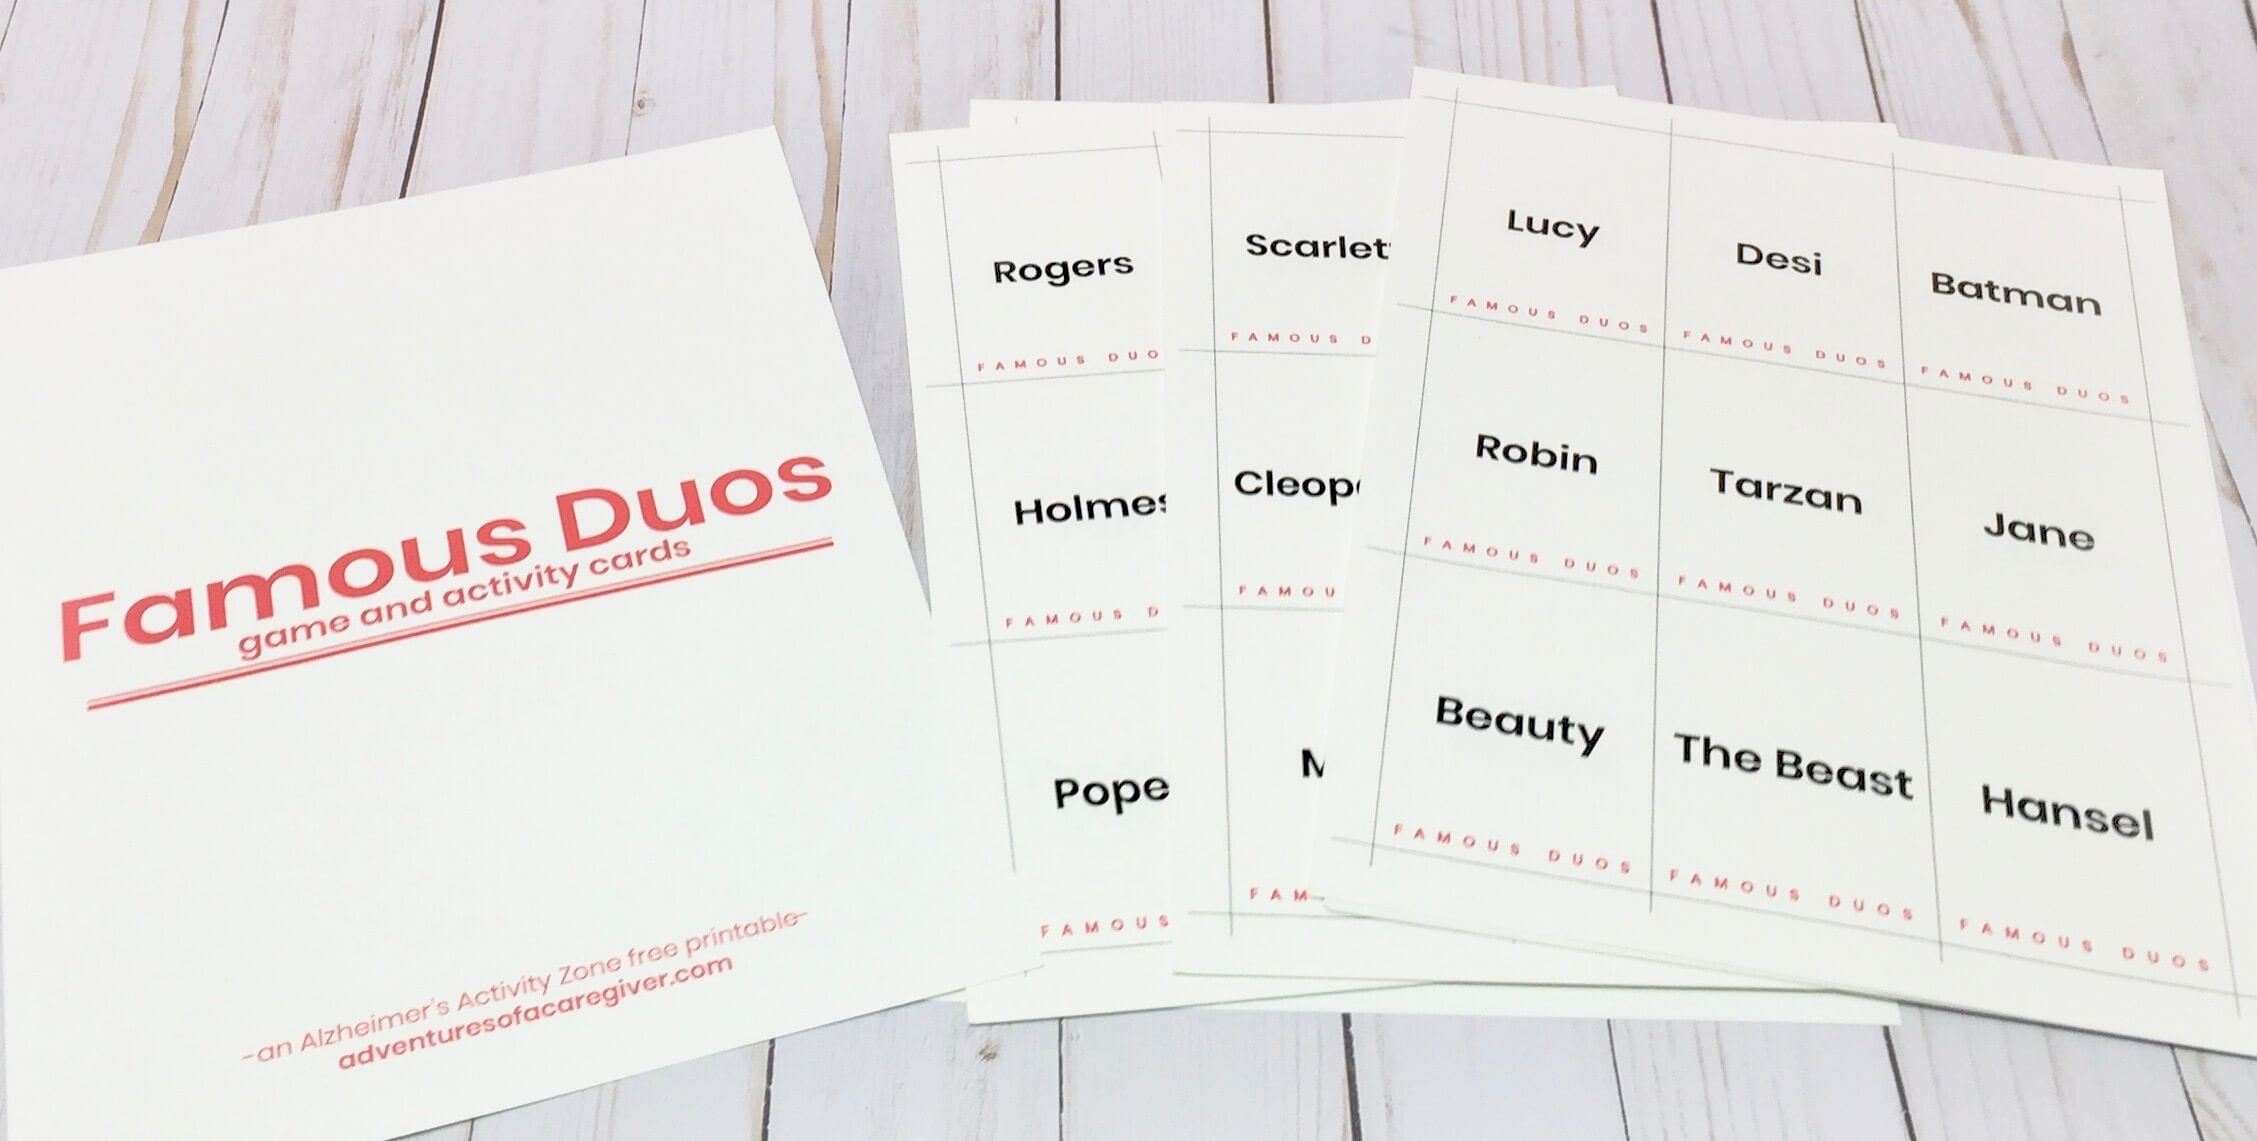 Alzheimer's Activity - Famous Duos Game Free Printable - Free Printable Activities For Dementia Patients